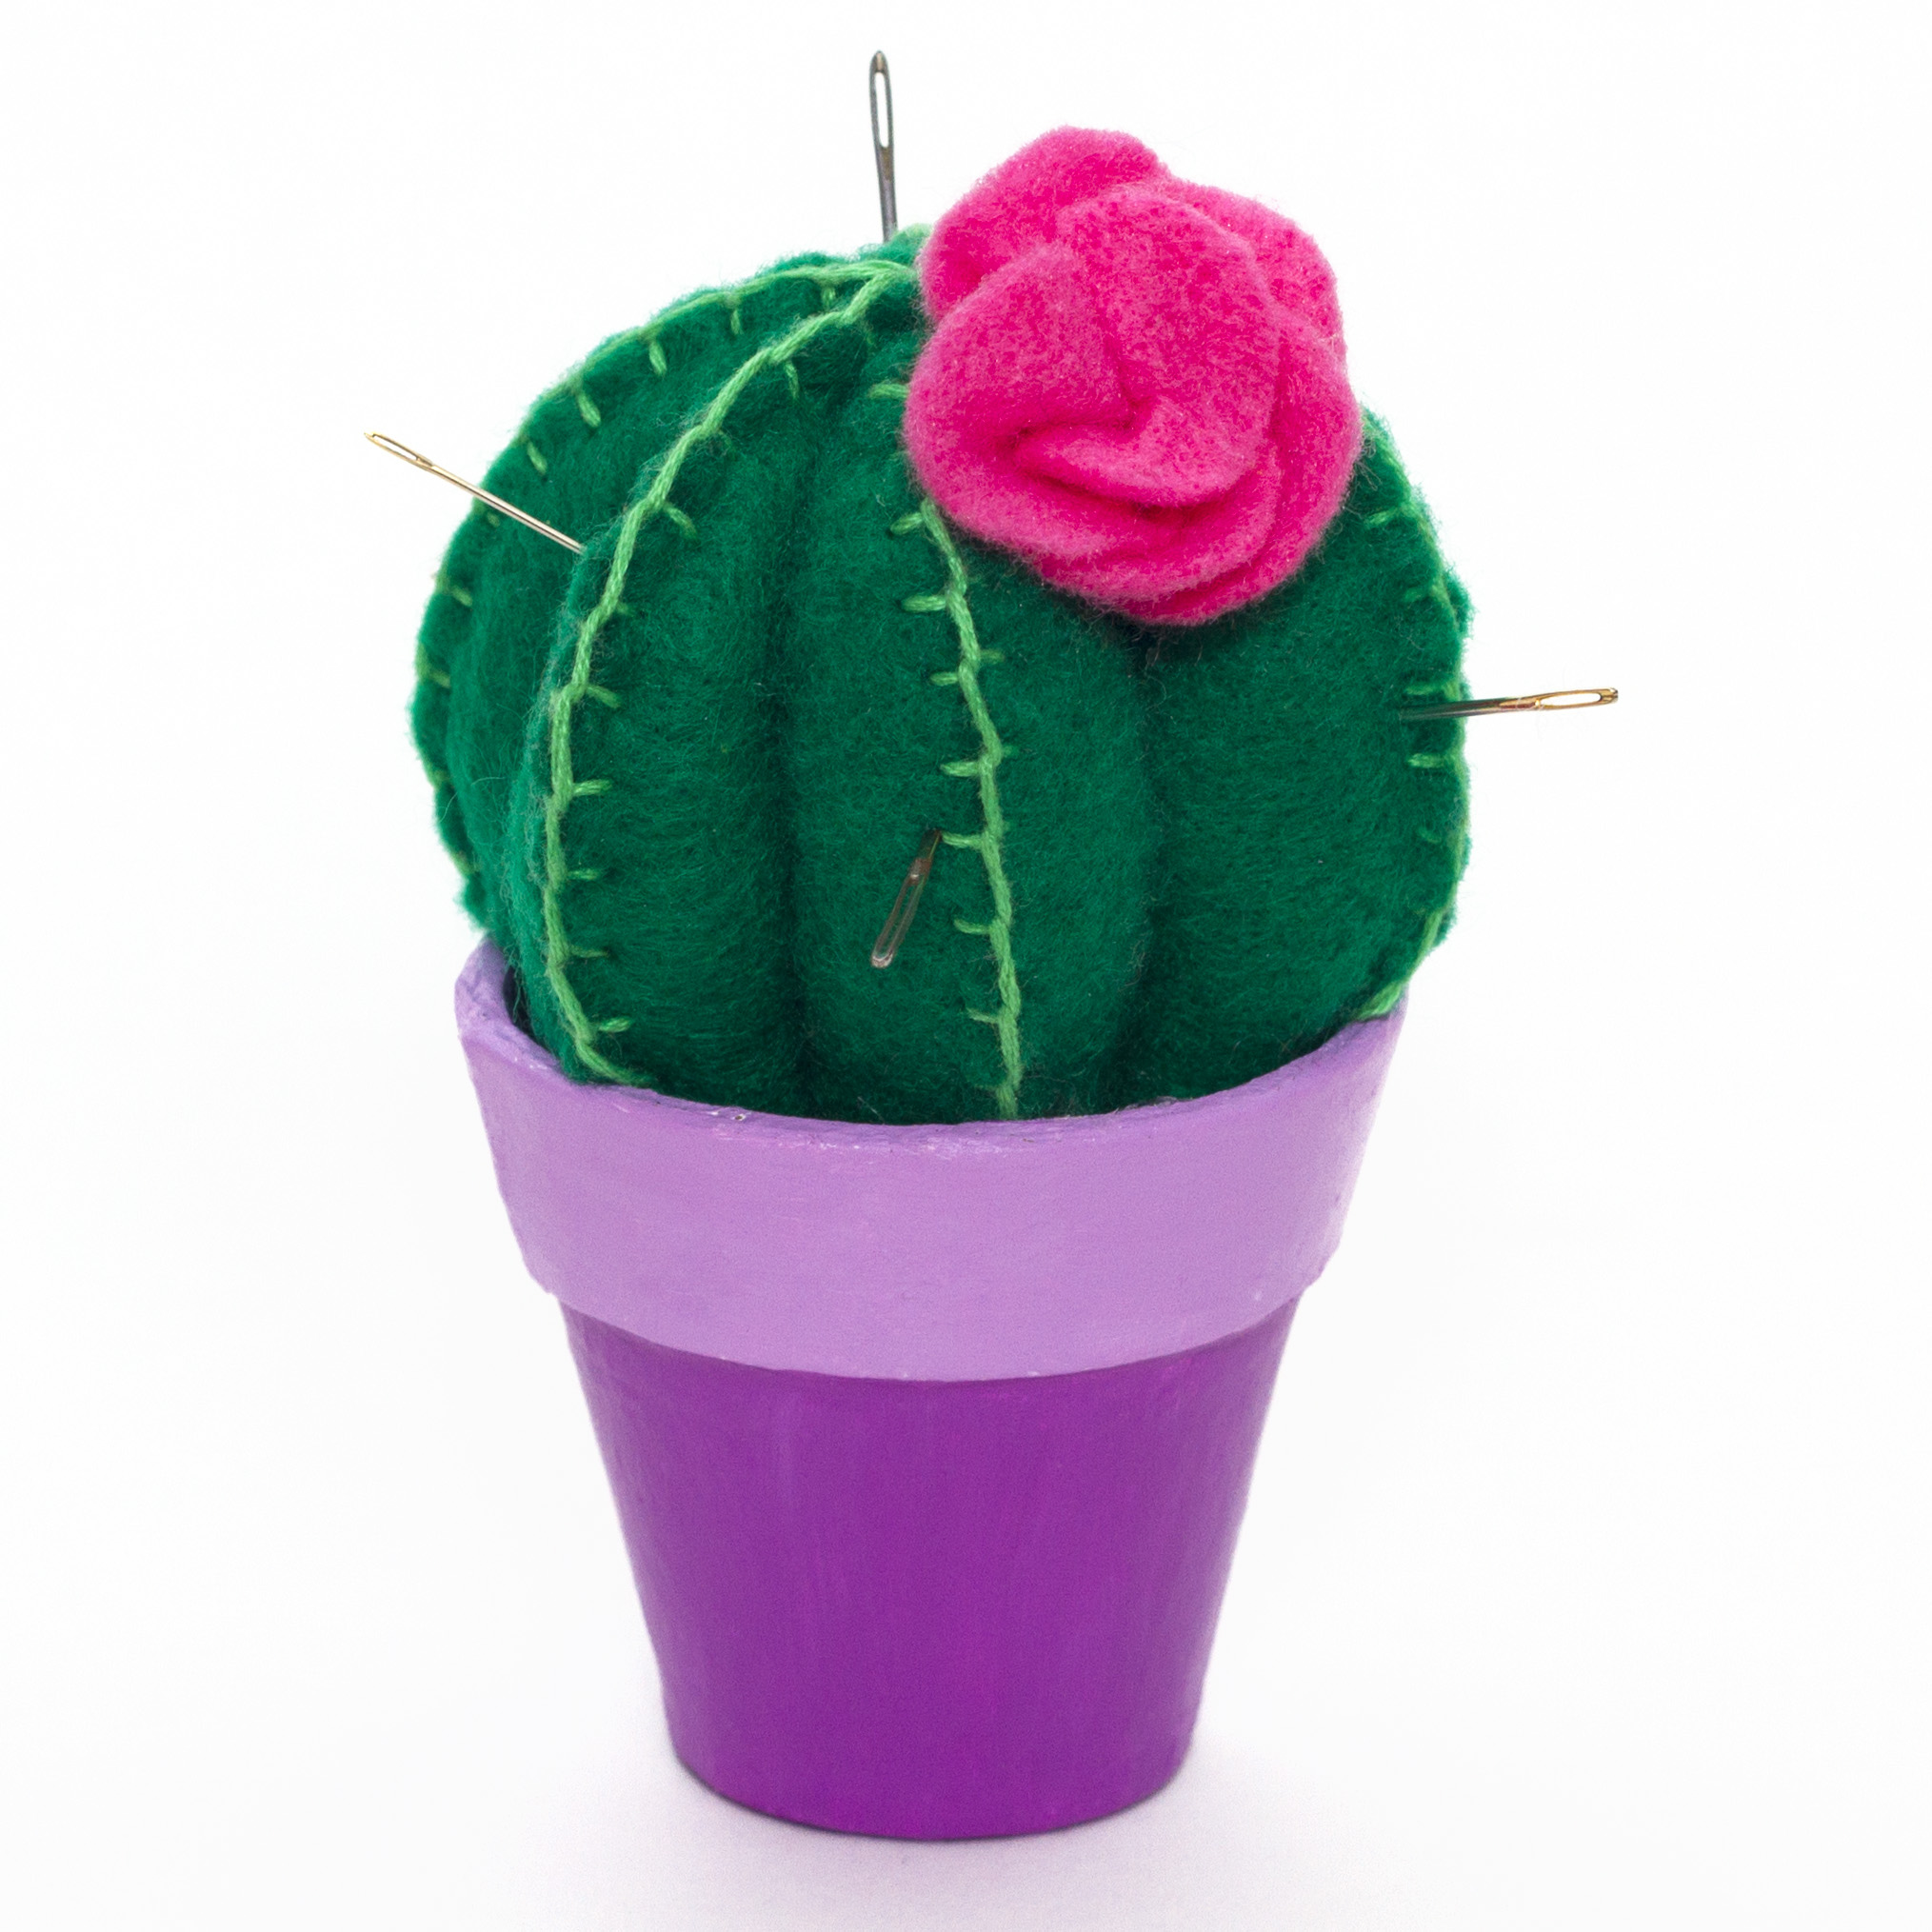 Step 5  Finally, sew the flower onto the cactus pin cushion. Paint the flowerpot if necessary to make it more colourful. Pop the cactus into the mini plant pot (glue it in if you don't want it to move, or leave it loose and keep spare pins and thread underneath!)  Now you have a fun quirky cactus to keep all of your pins in for your crafting needs!  Subscribe to my  newsletter  to receive fun craft ideas weekly!